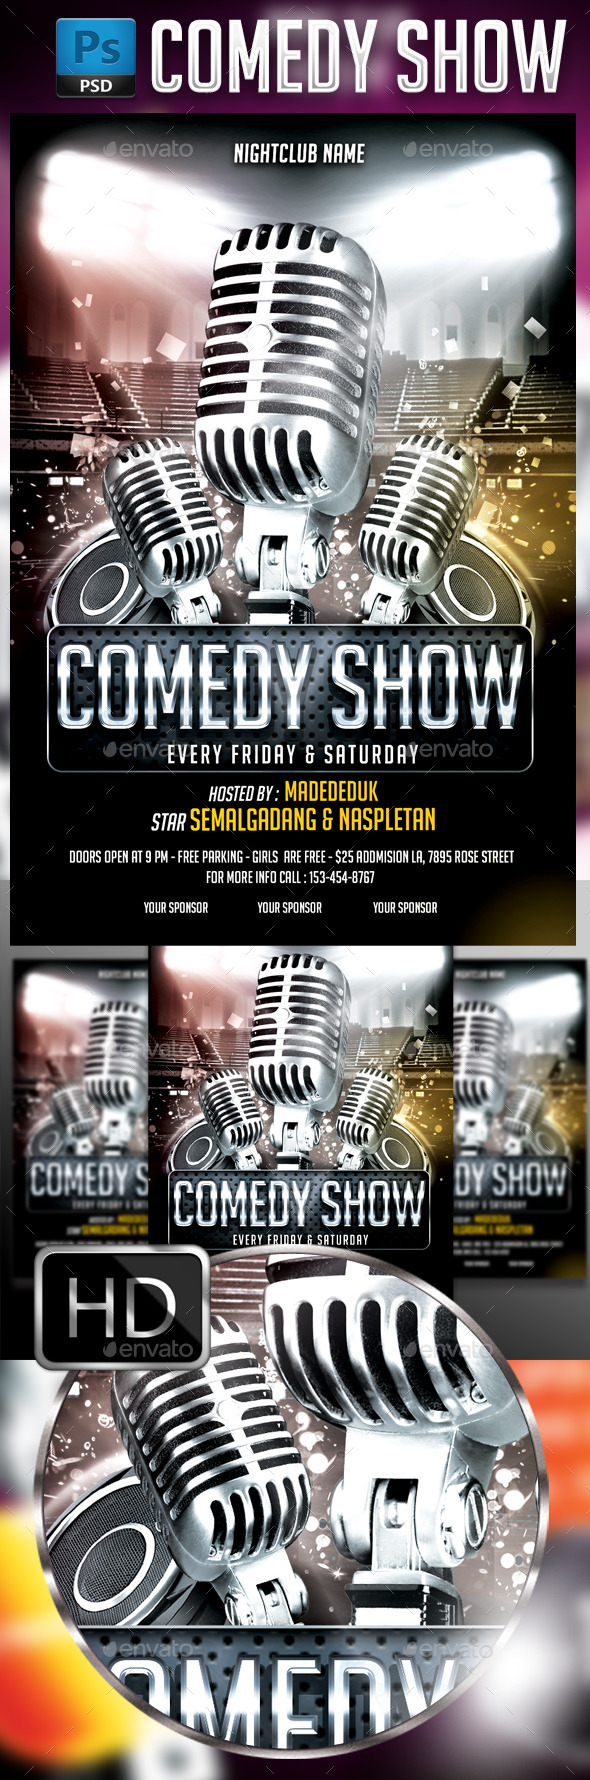 Comedy Show Flyer Template #2 - Events Flyers